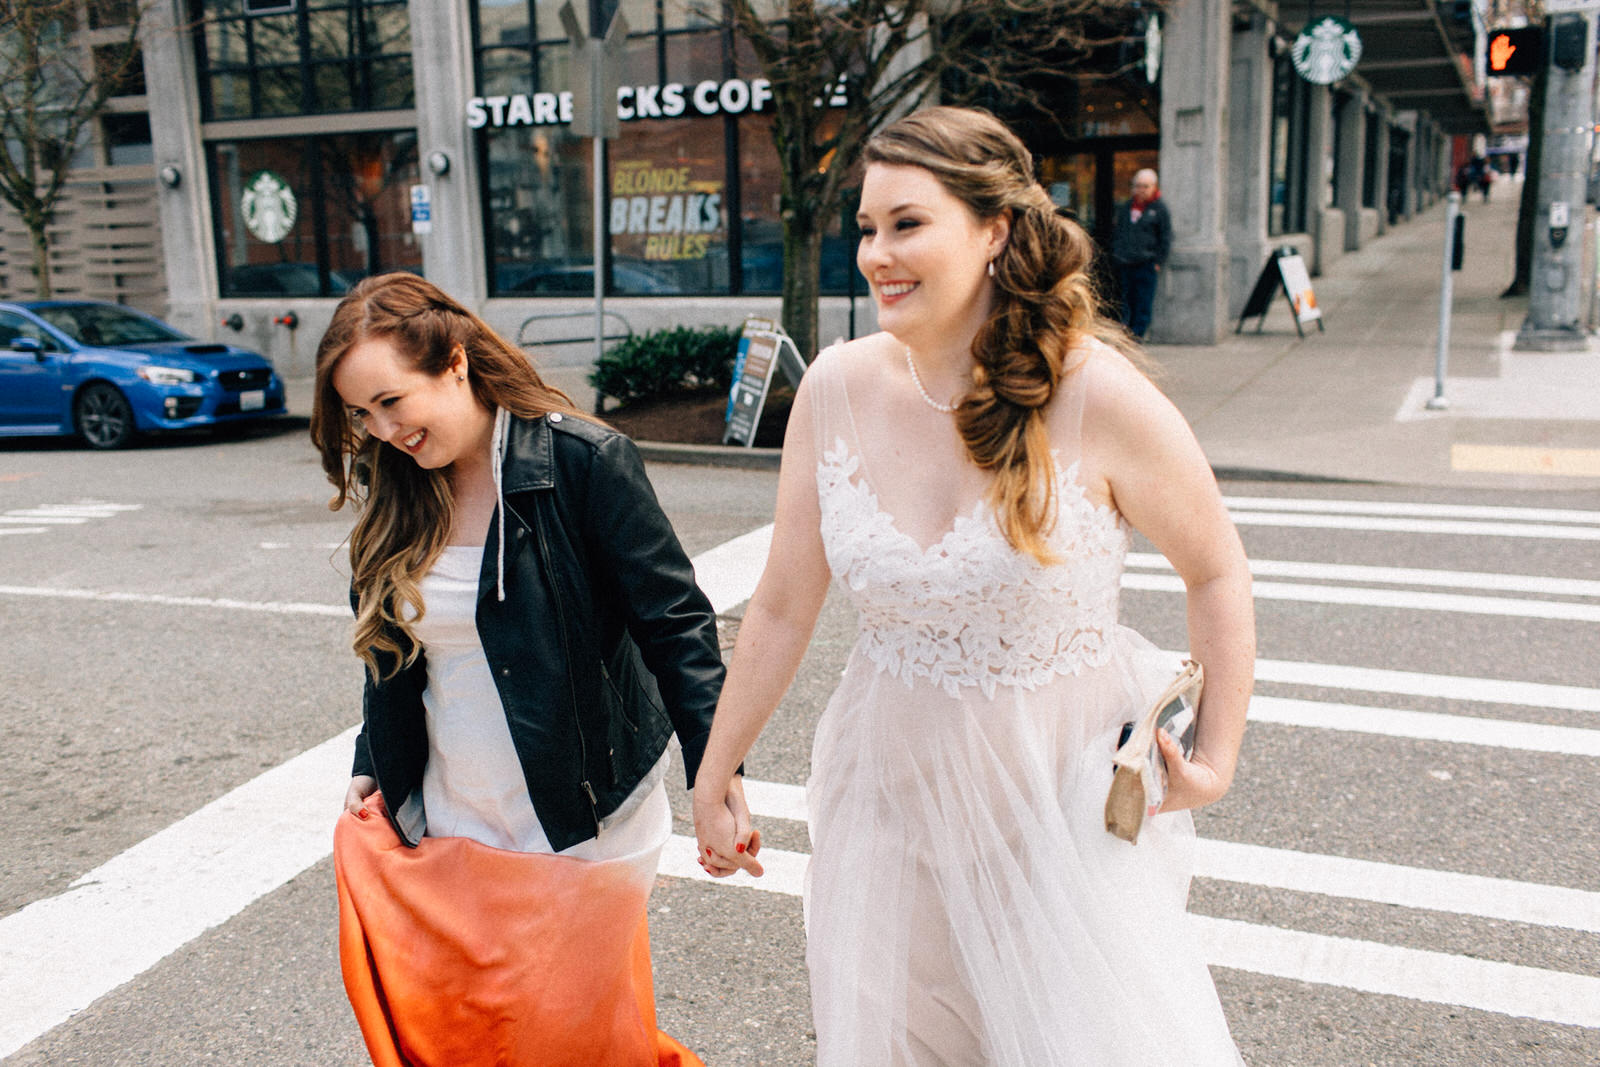 seattle feminist wedding photographer lgbtq lgbt queer wedding downtown fuck yeah weddings kendall lauren shea